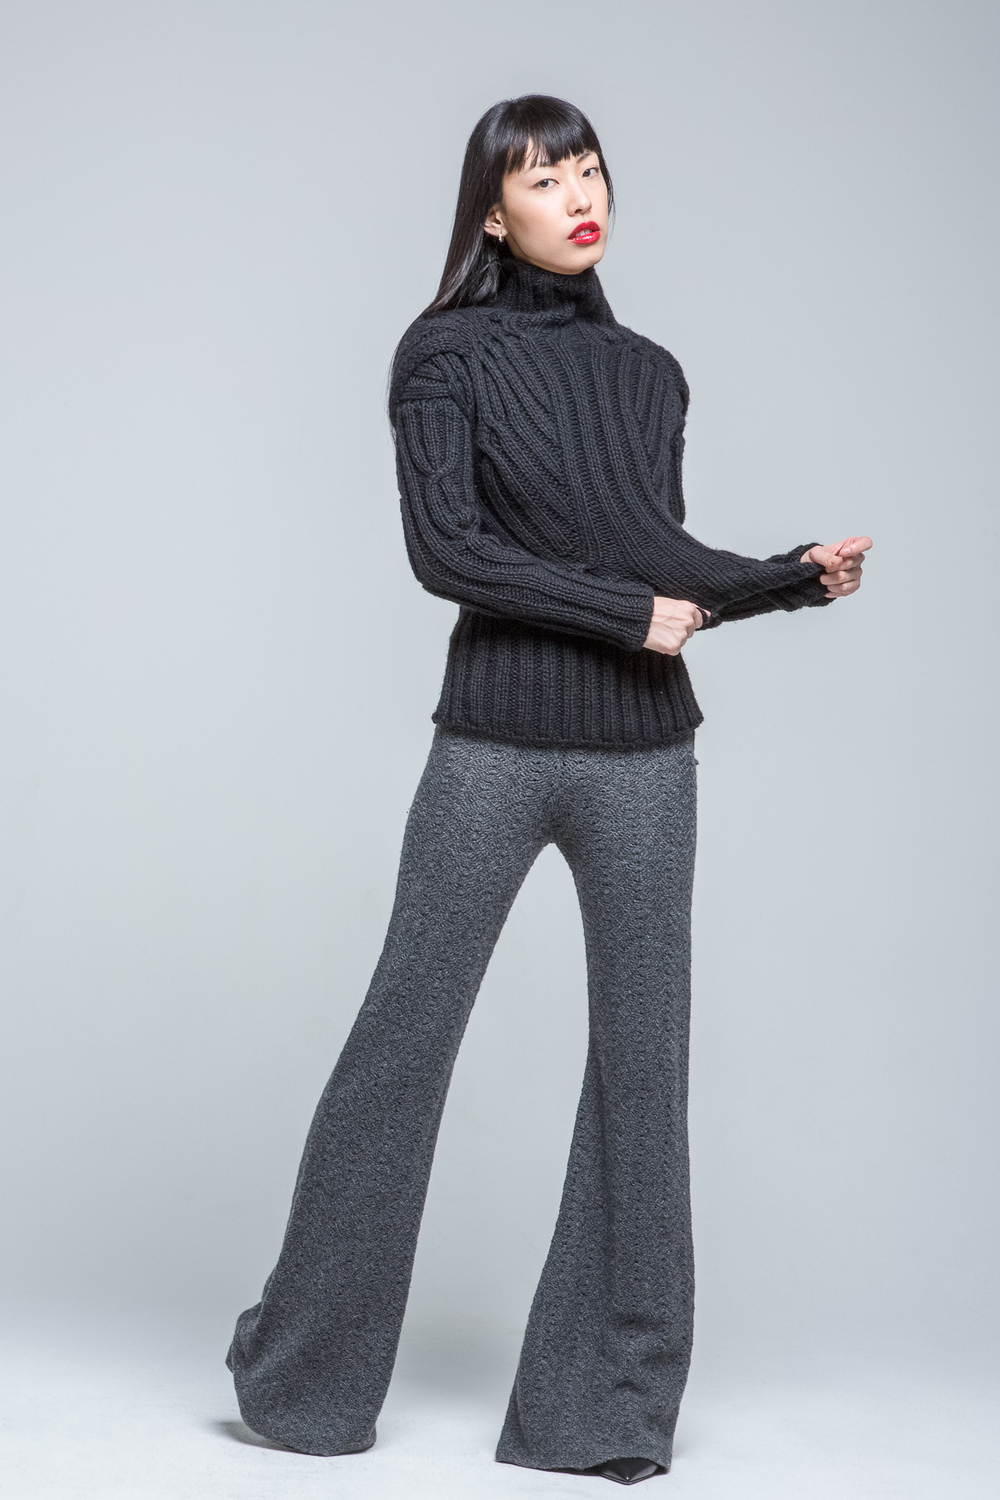 Spencer Vladimir FW16 (Web Res) (8 of 23).jpg